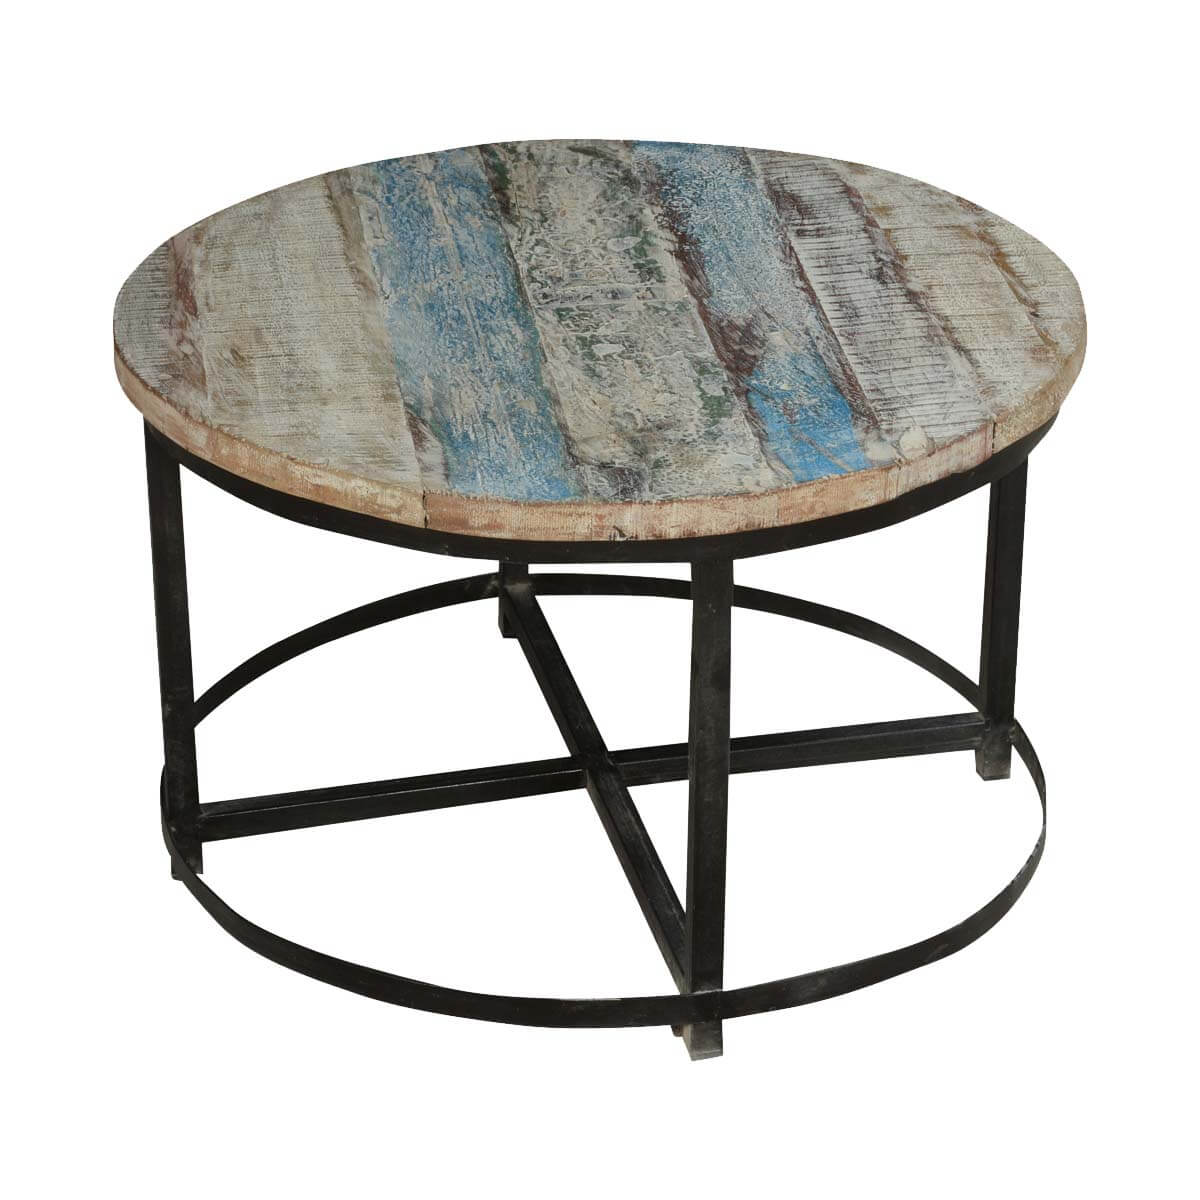 Industrial Style Round Coffee Table: Bithlo Reclaimed Wood Top Round Industrial Coffee Table